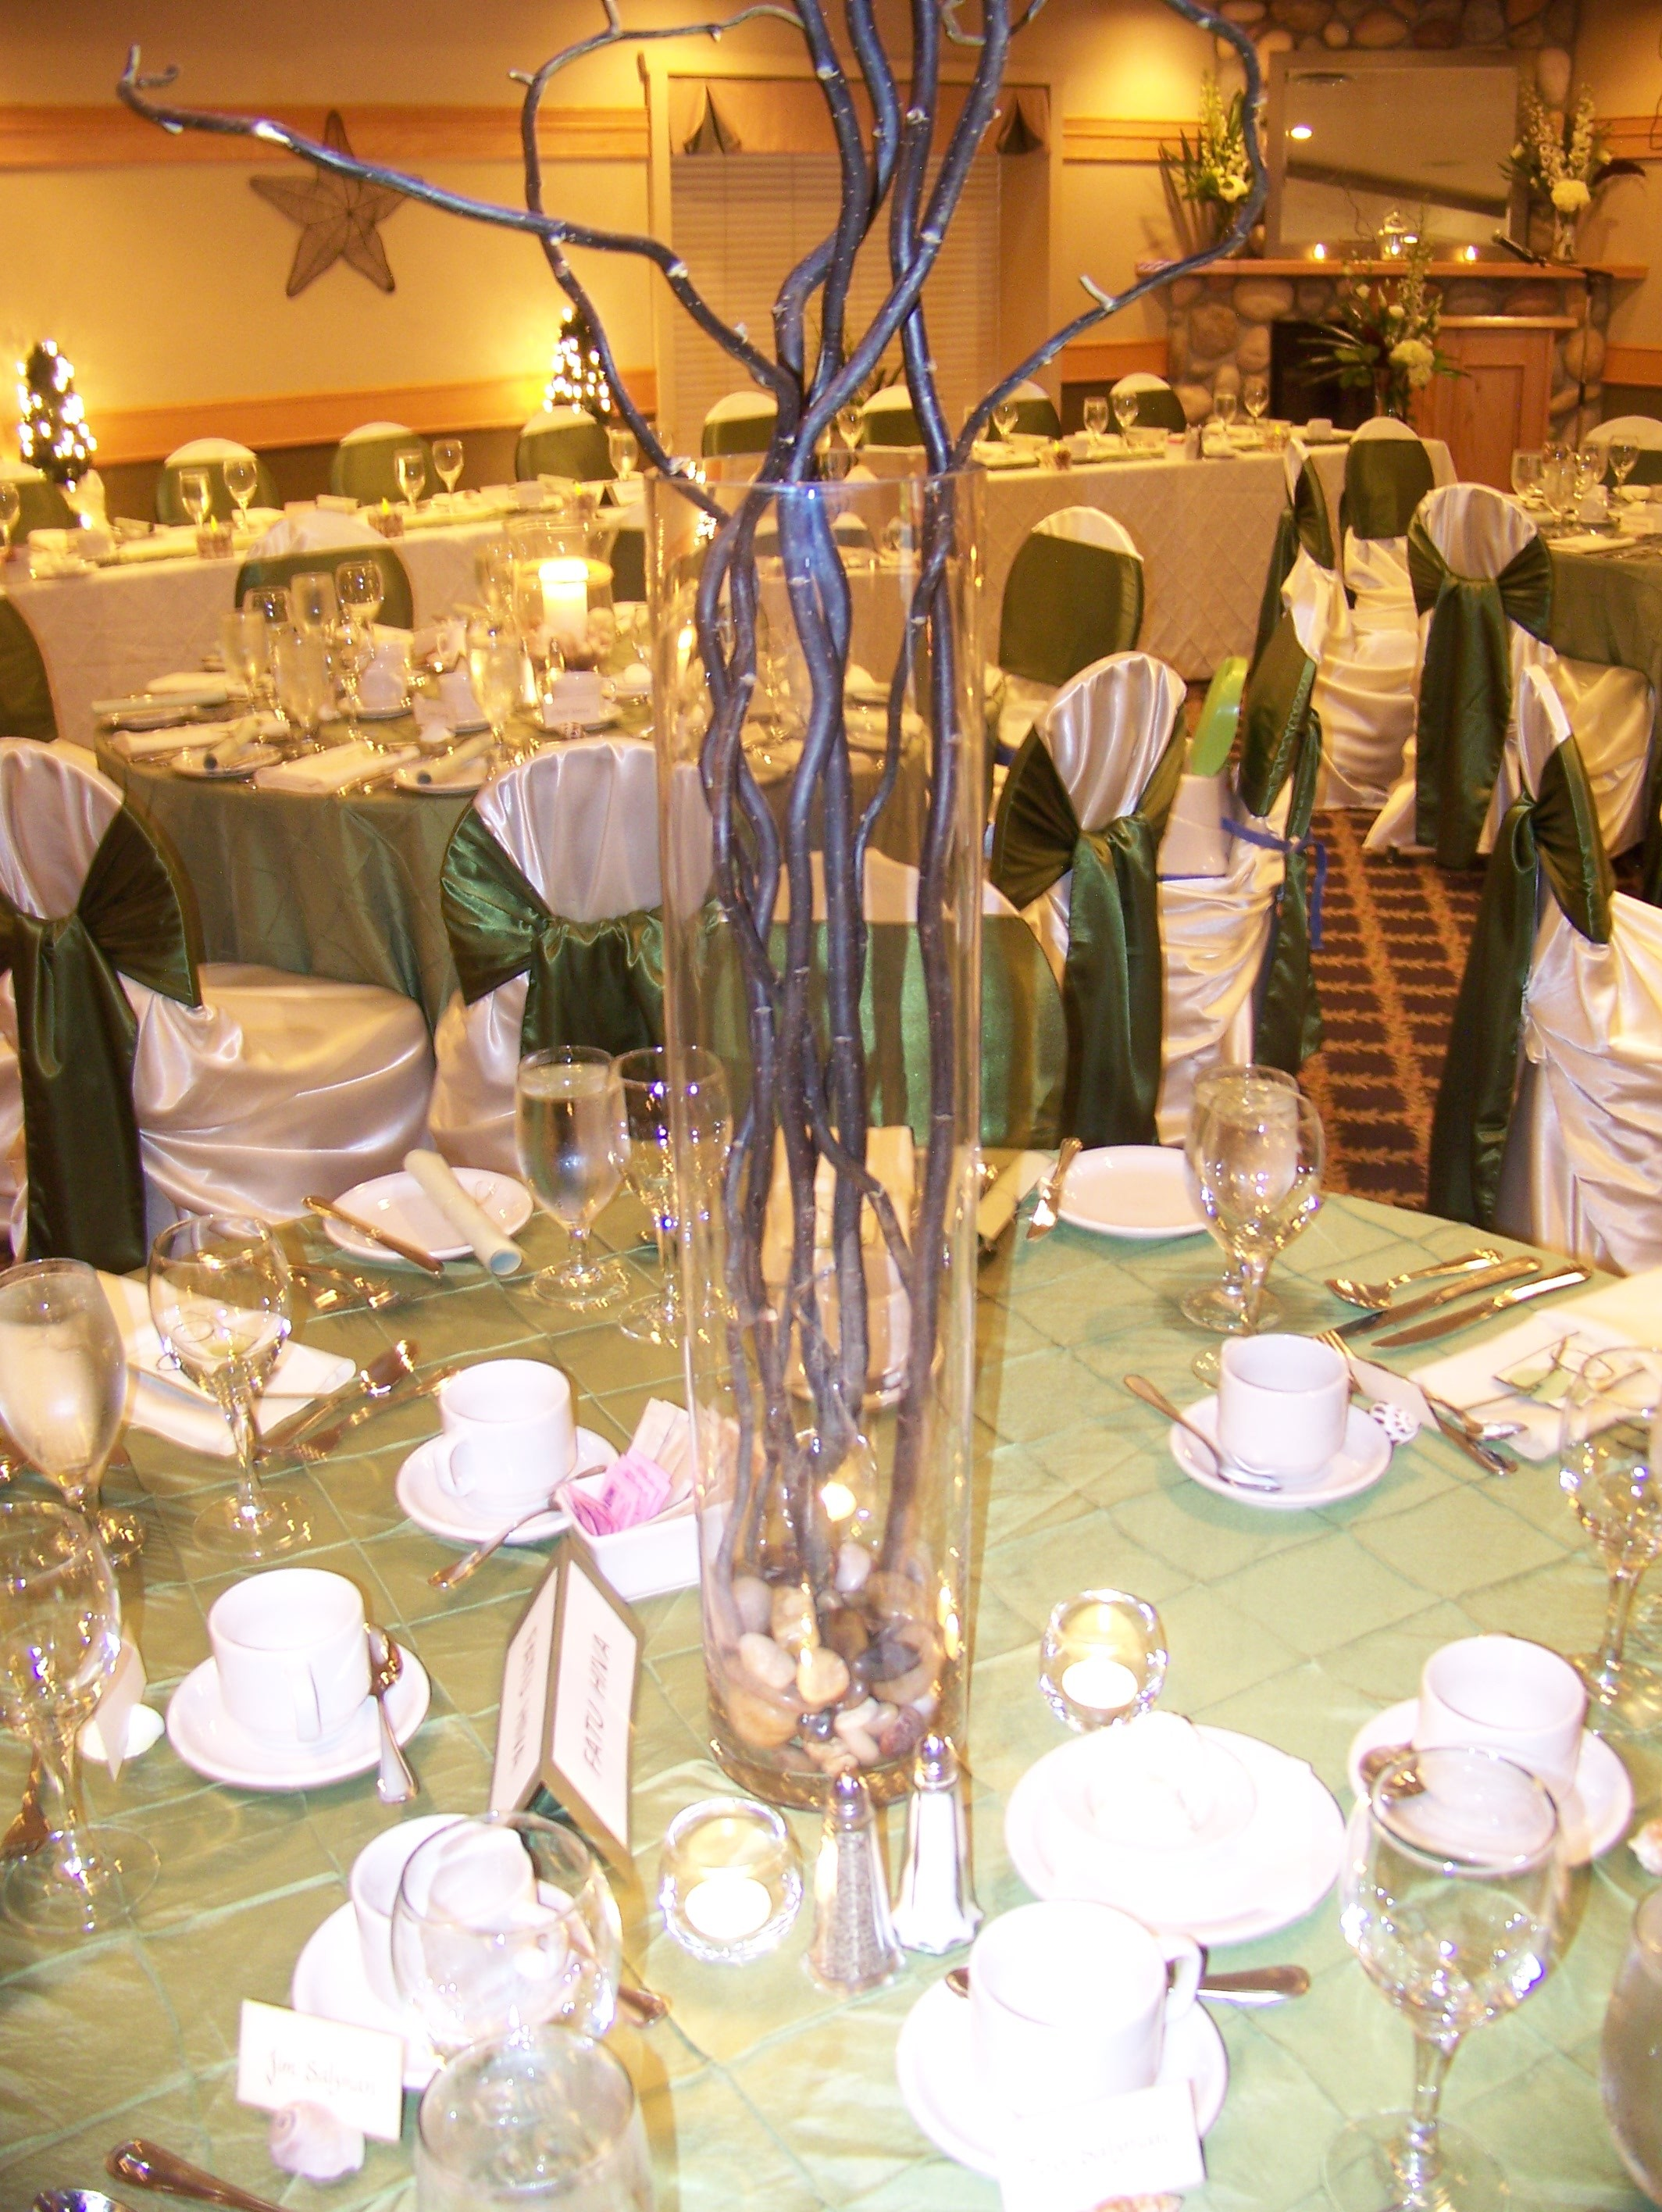 Reception, Flowers & Decor, Decor, ivory, green, Centerpieces, Centerpiece, Linens, Watkins event decor